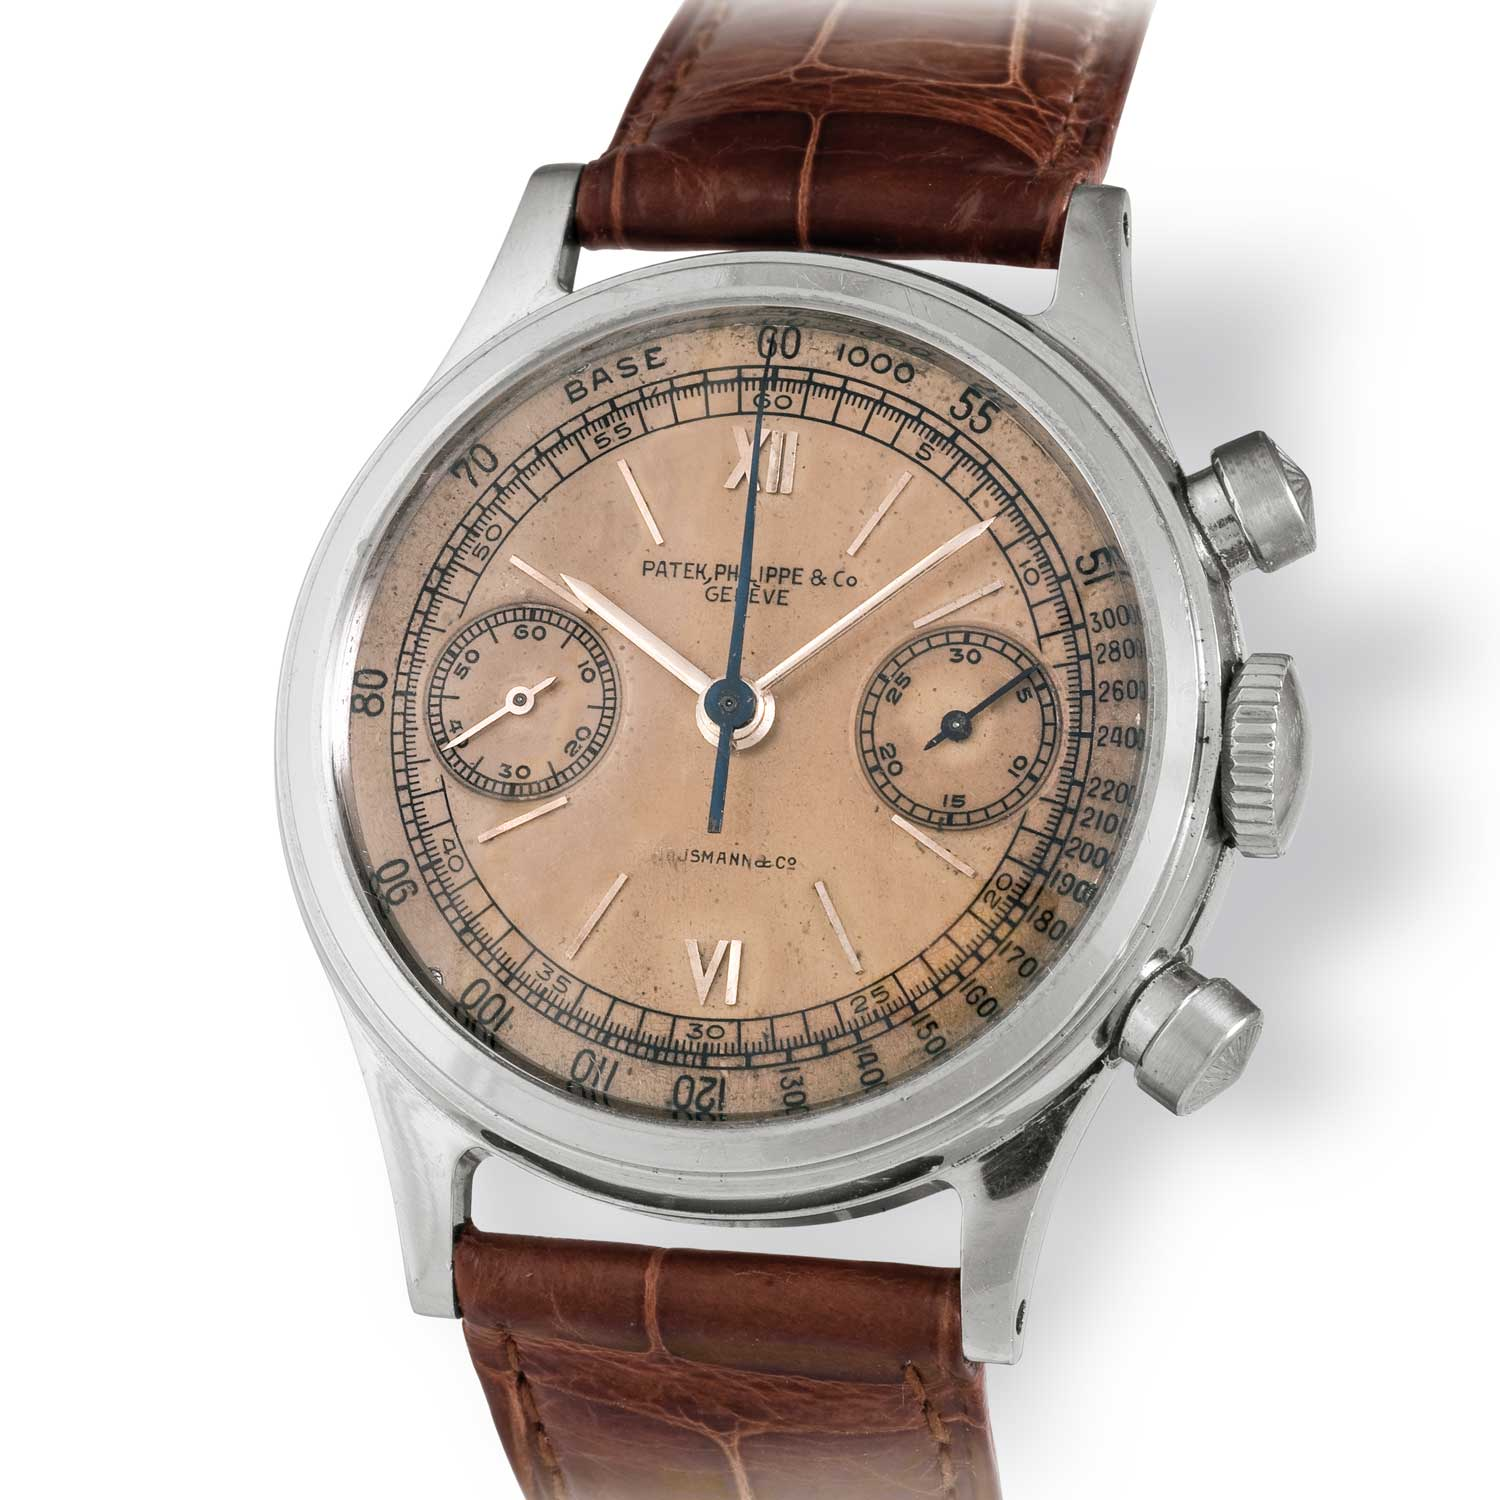 Patek Philippe ref. 1463 steel chronograph with Roman numerals on a pink /salmon dial (Image: John Goldberger)